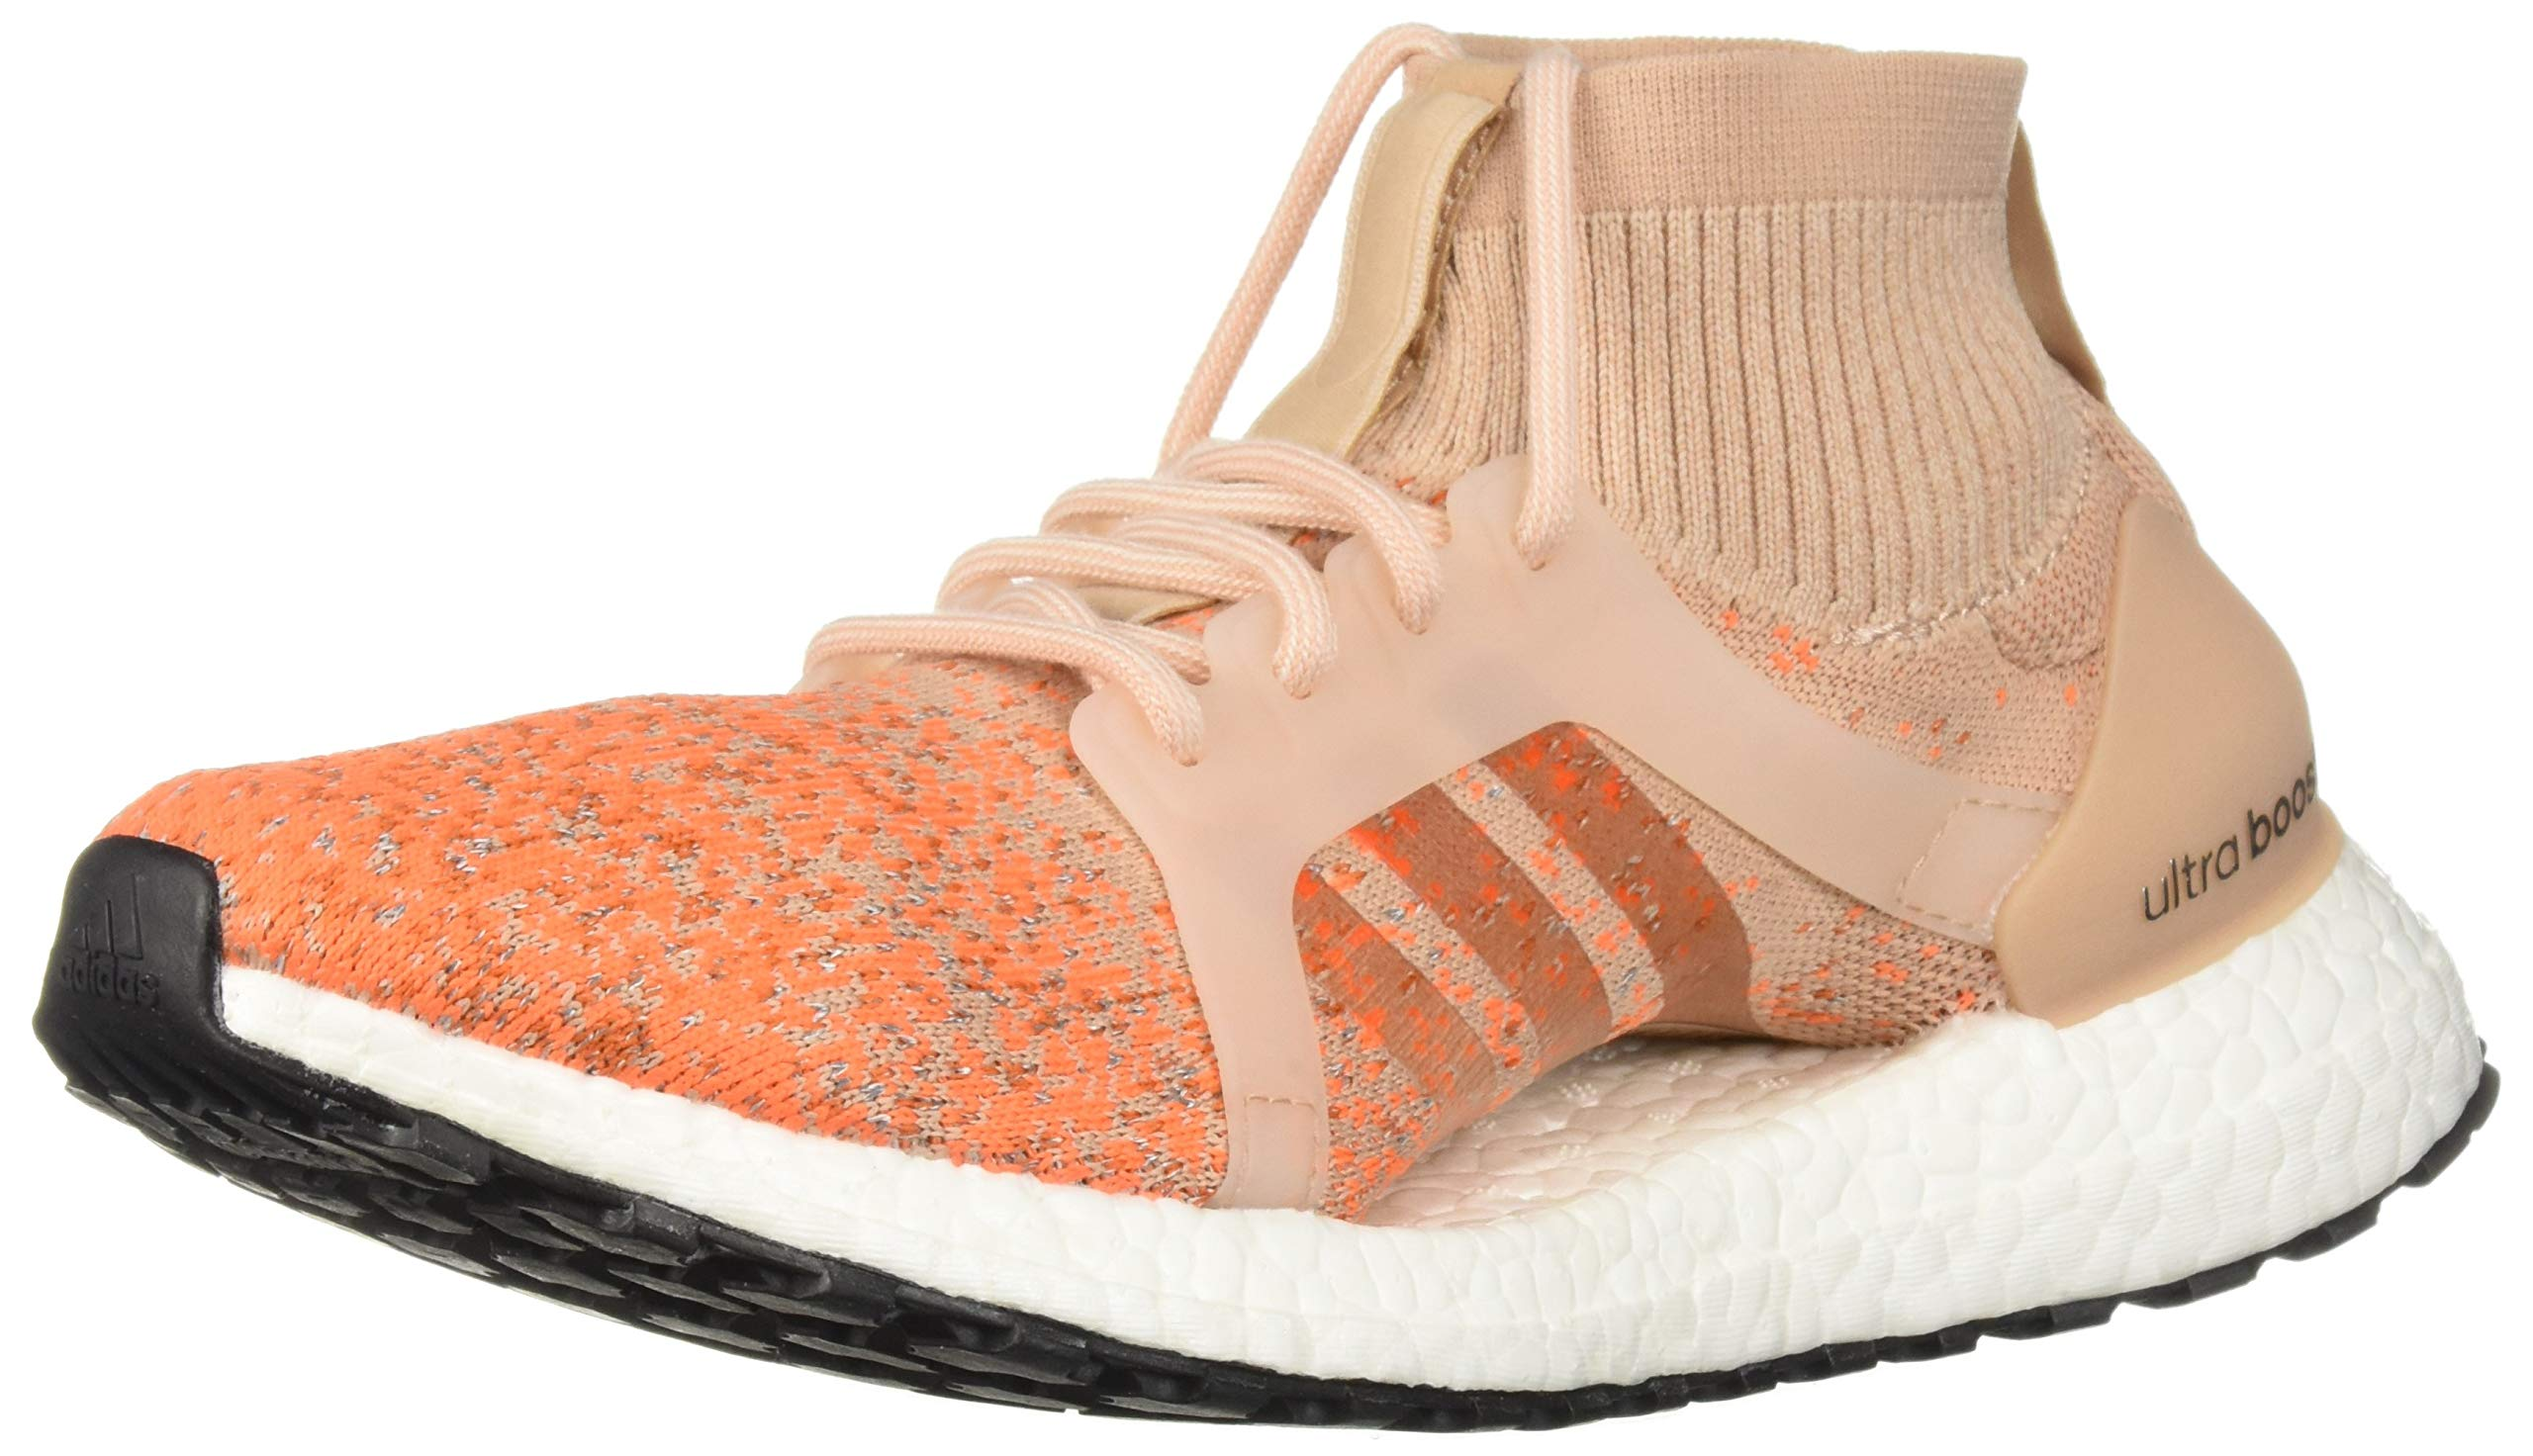 adidas Women's Ultraboost X All Terrain LTD, Ash PearlAsh PearlTrace Orange, 9.5 M US